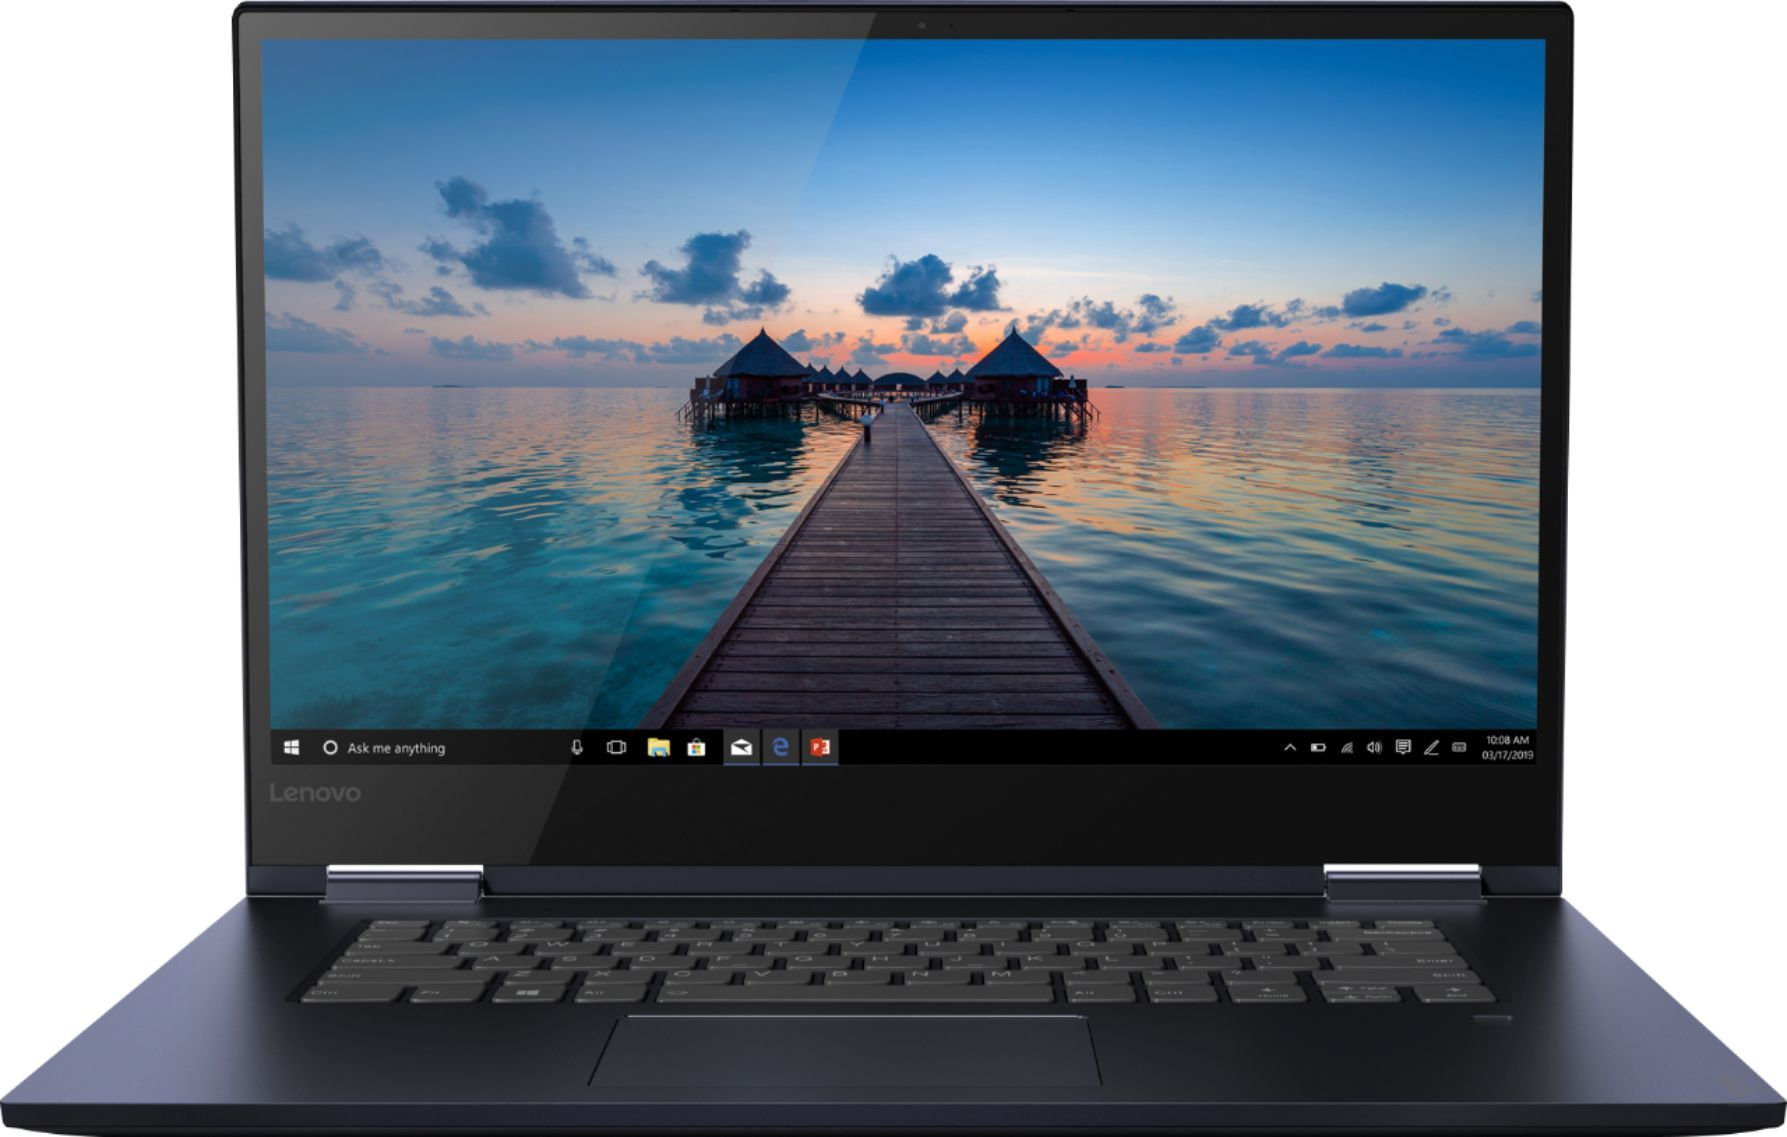 Lenovo Yoga 730 2 In 1 15 6 Touch Screen Laptop Intel Core I5 12gb Memory 256gb Solid State Drive Abyss Blue 81js005bus Touch Screen Laptop Lenovo Yoga Lenovo